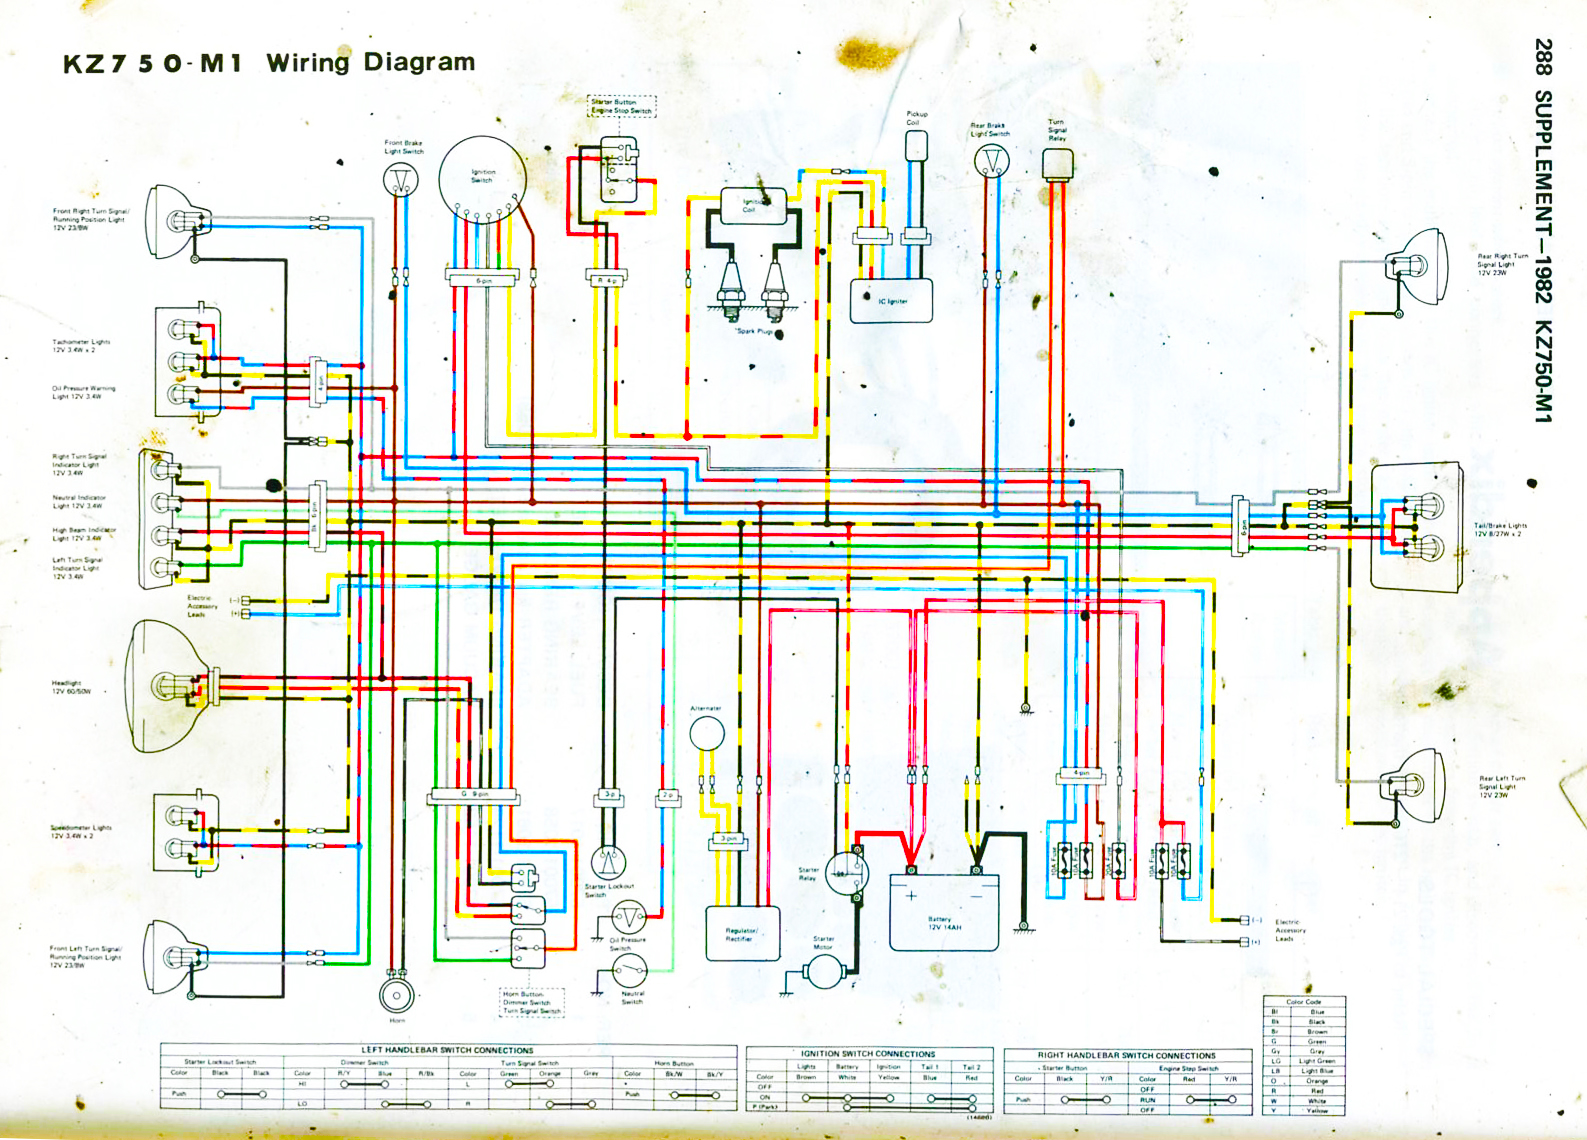 Battery Wiring Diagram With Kickstart Control Xl350 82 Kz750 Get Free Image About